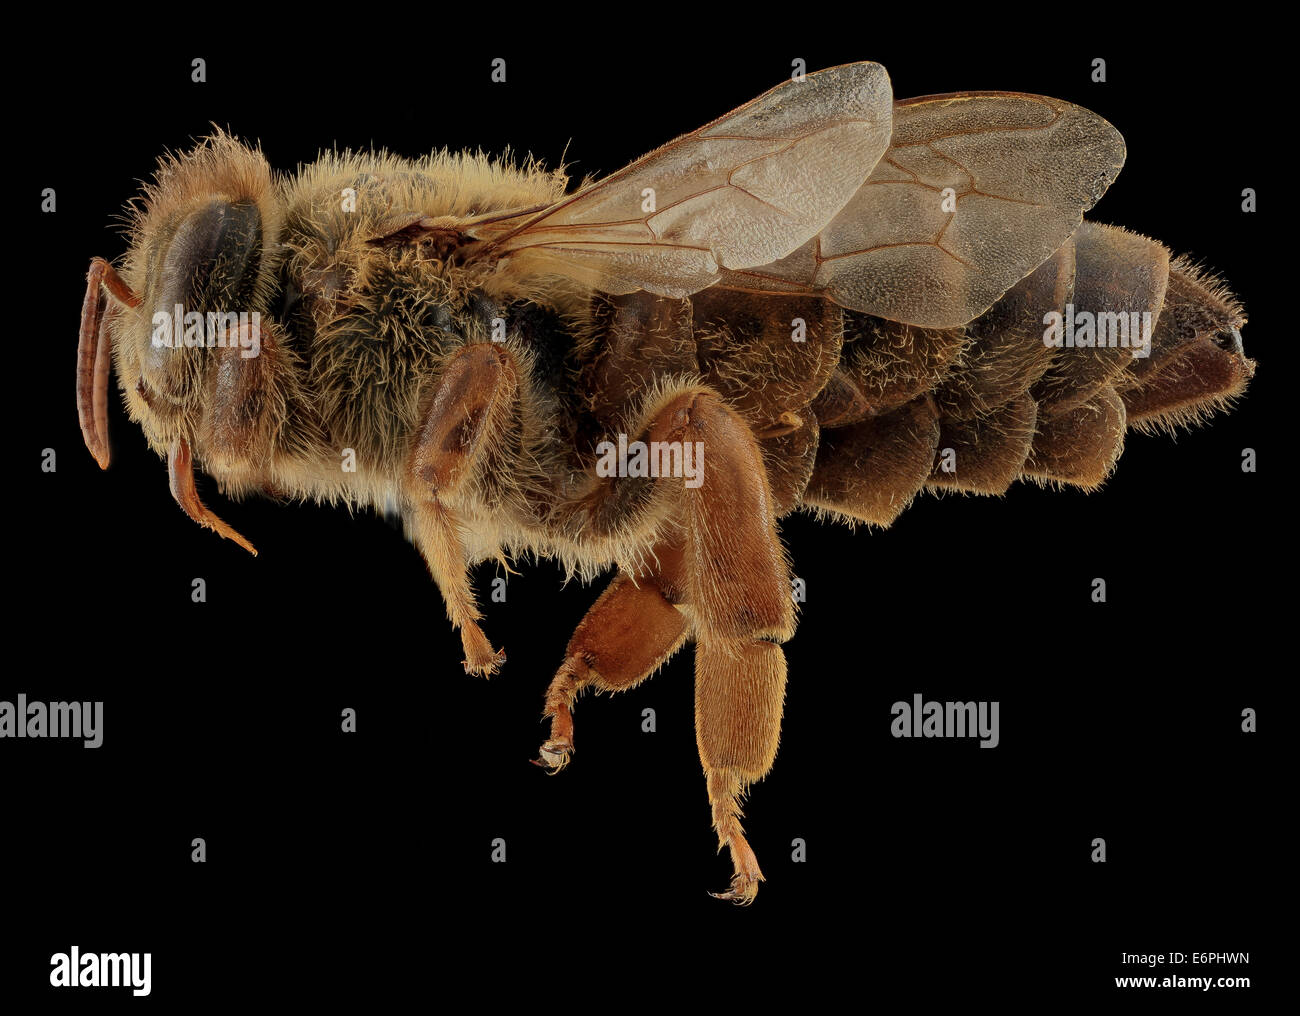 Apis mellifera, Queen, side, MD, Talbot County_2013-09-30-174551 ZS PMax_10030628256_o Queen Bee photo spread. Collected - Stock Image